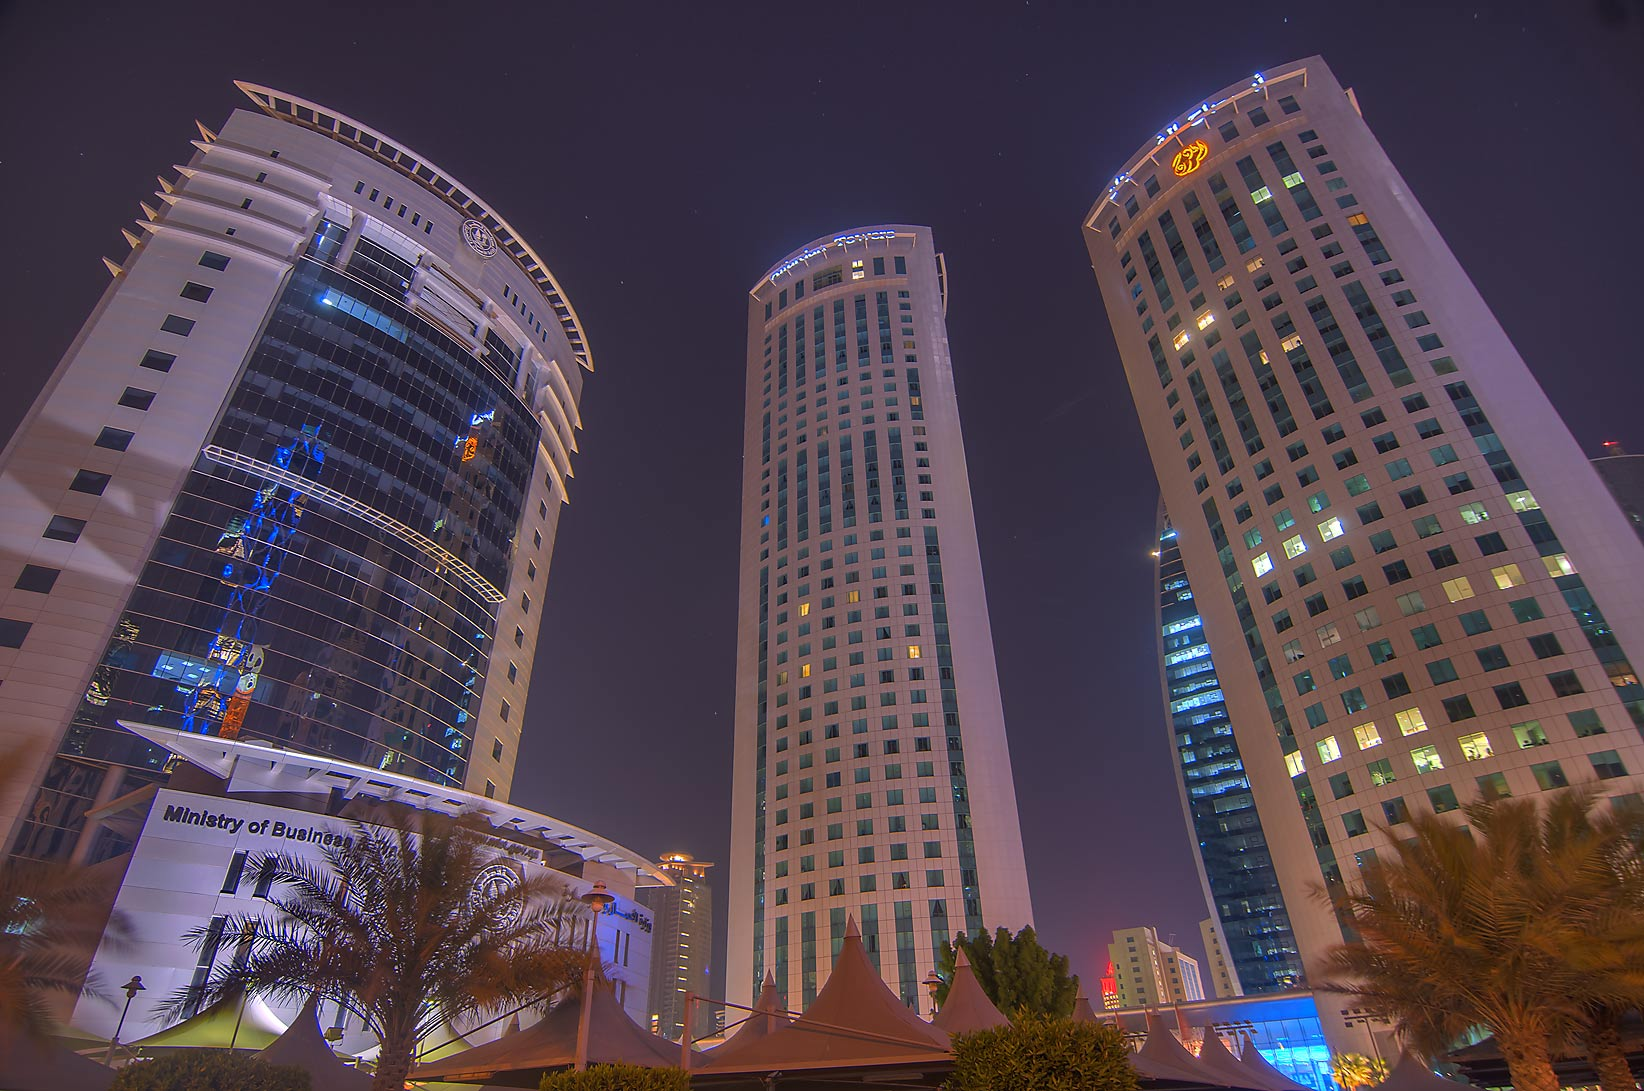 Ministry of Business and Al Fardan twin towers near Al Funduq St. in West Bay. Doha, Qatar